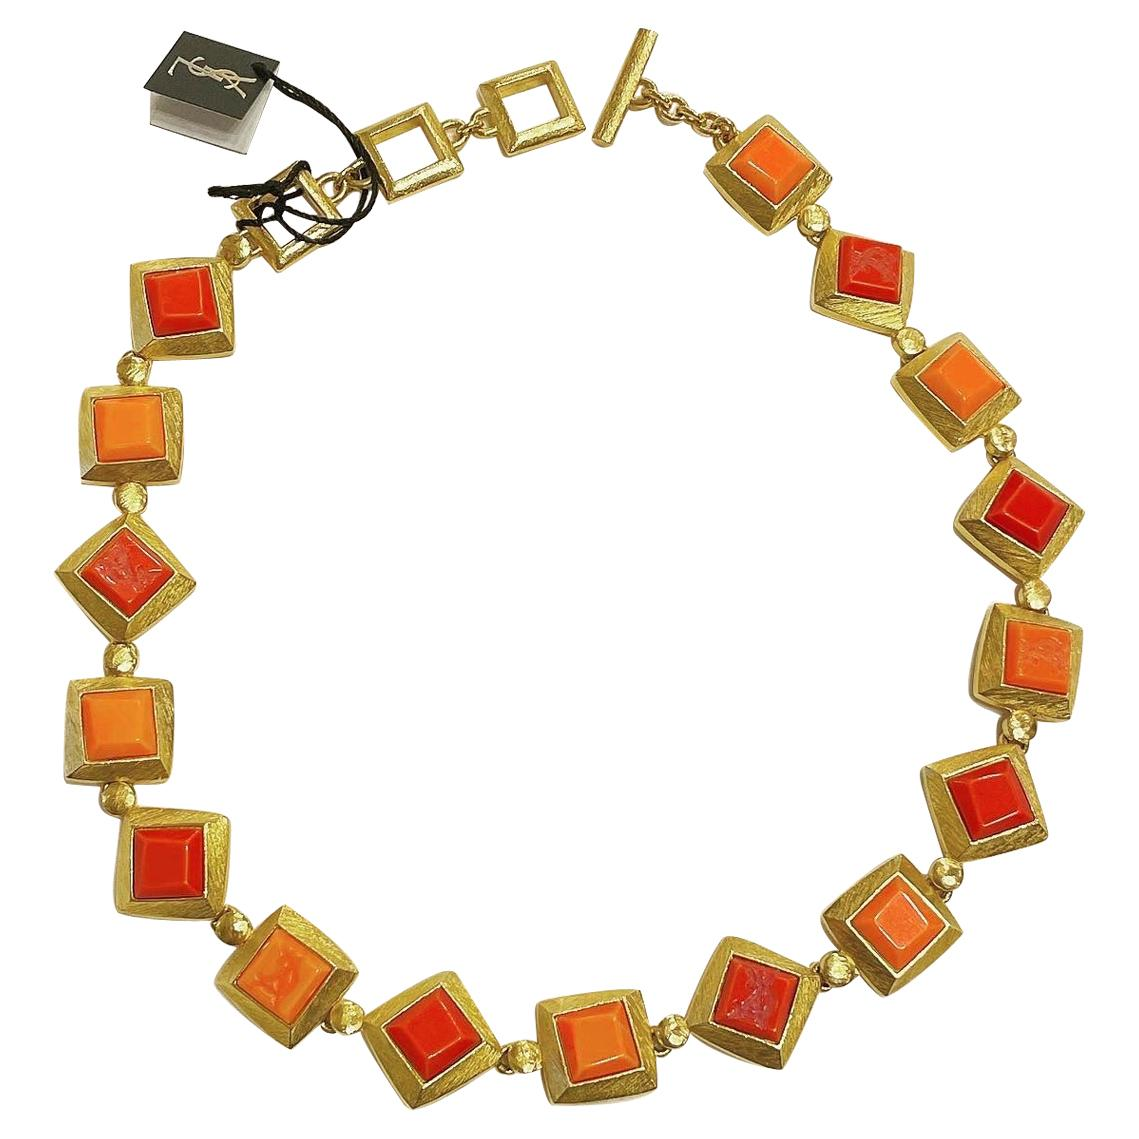 Yves Saint Laurent YSL 1980s Vintage Gilt and Resin Fashion Never Used Necklace